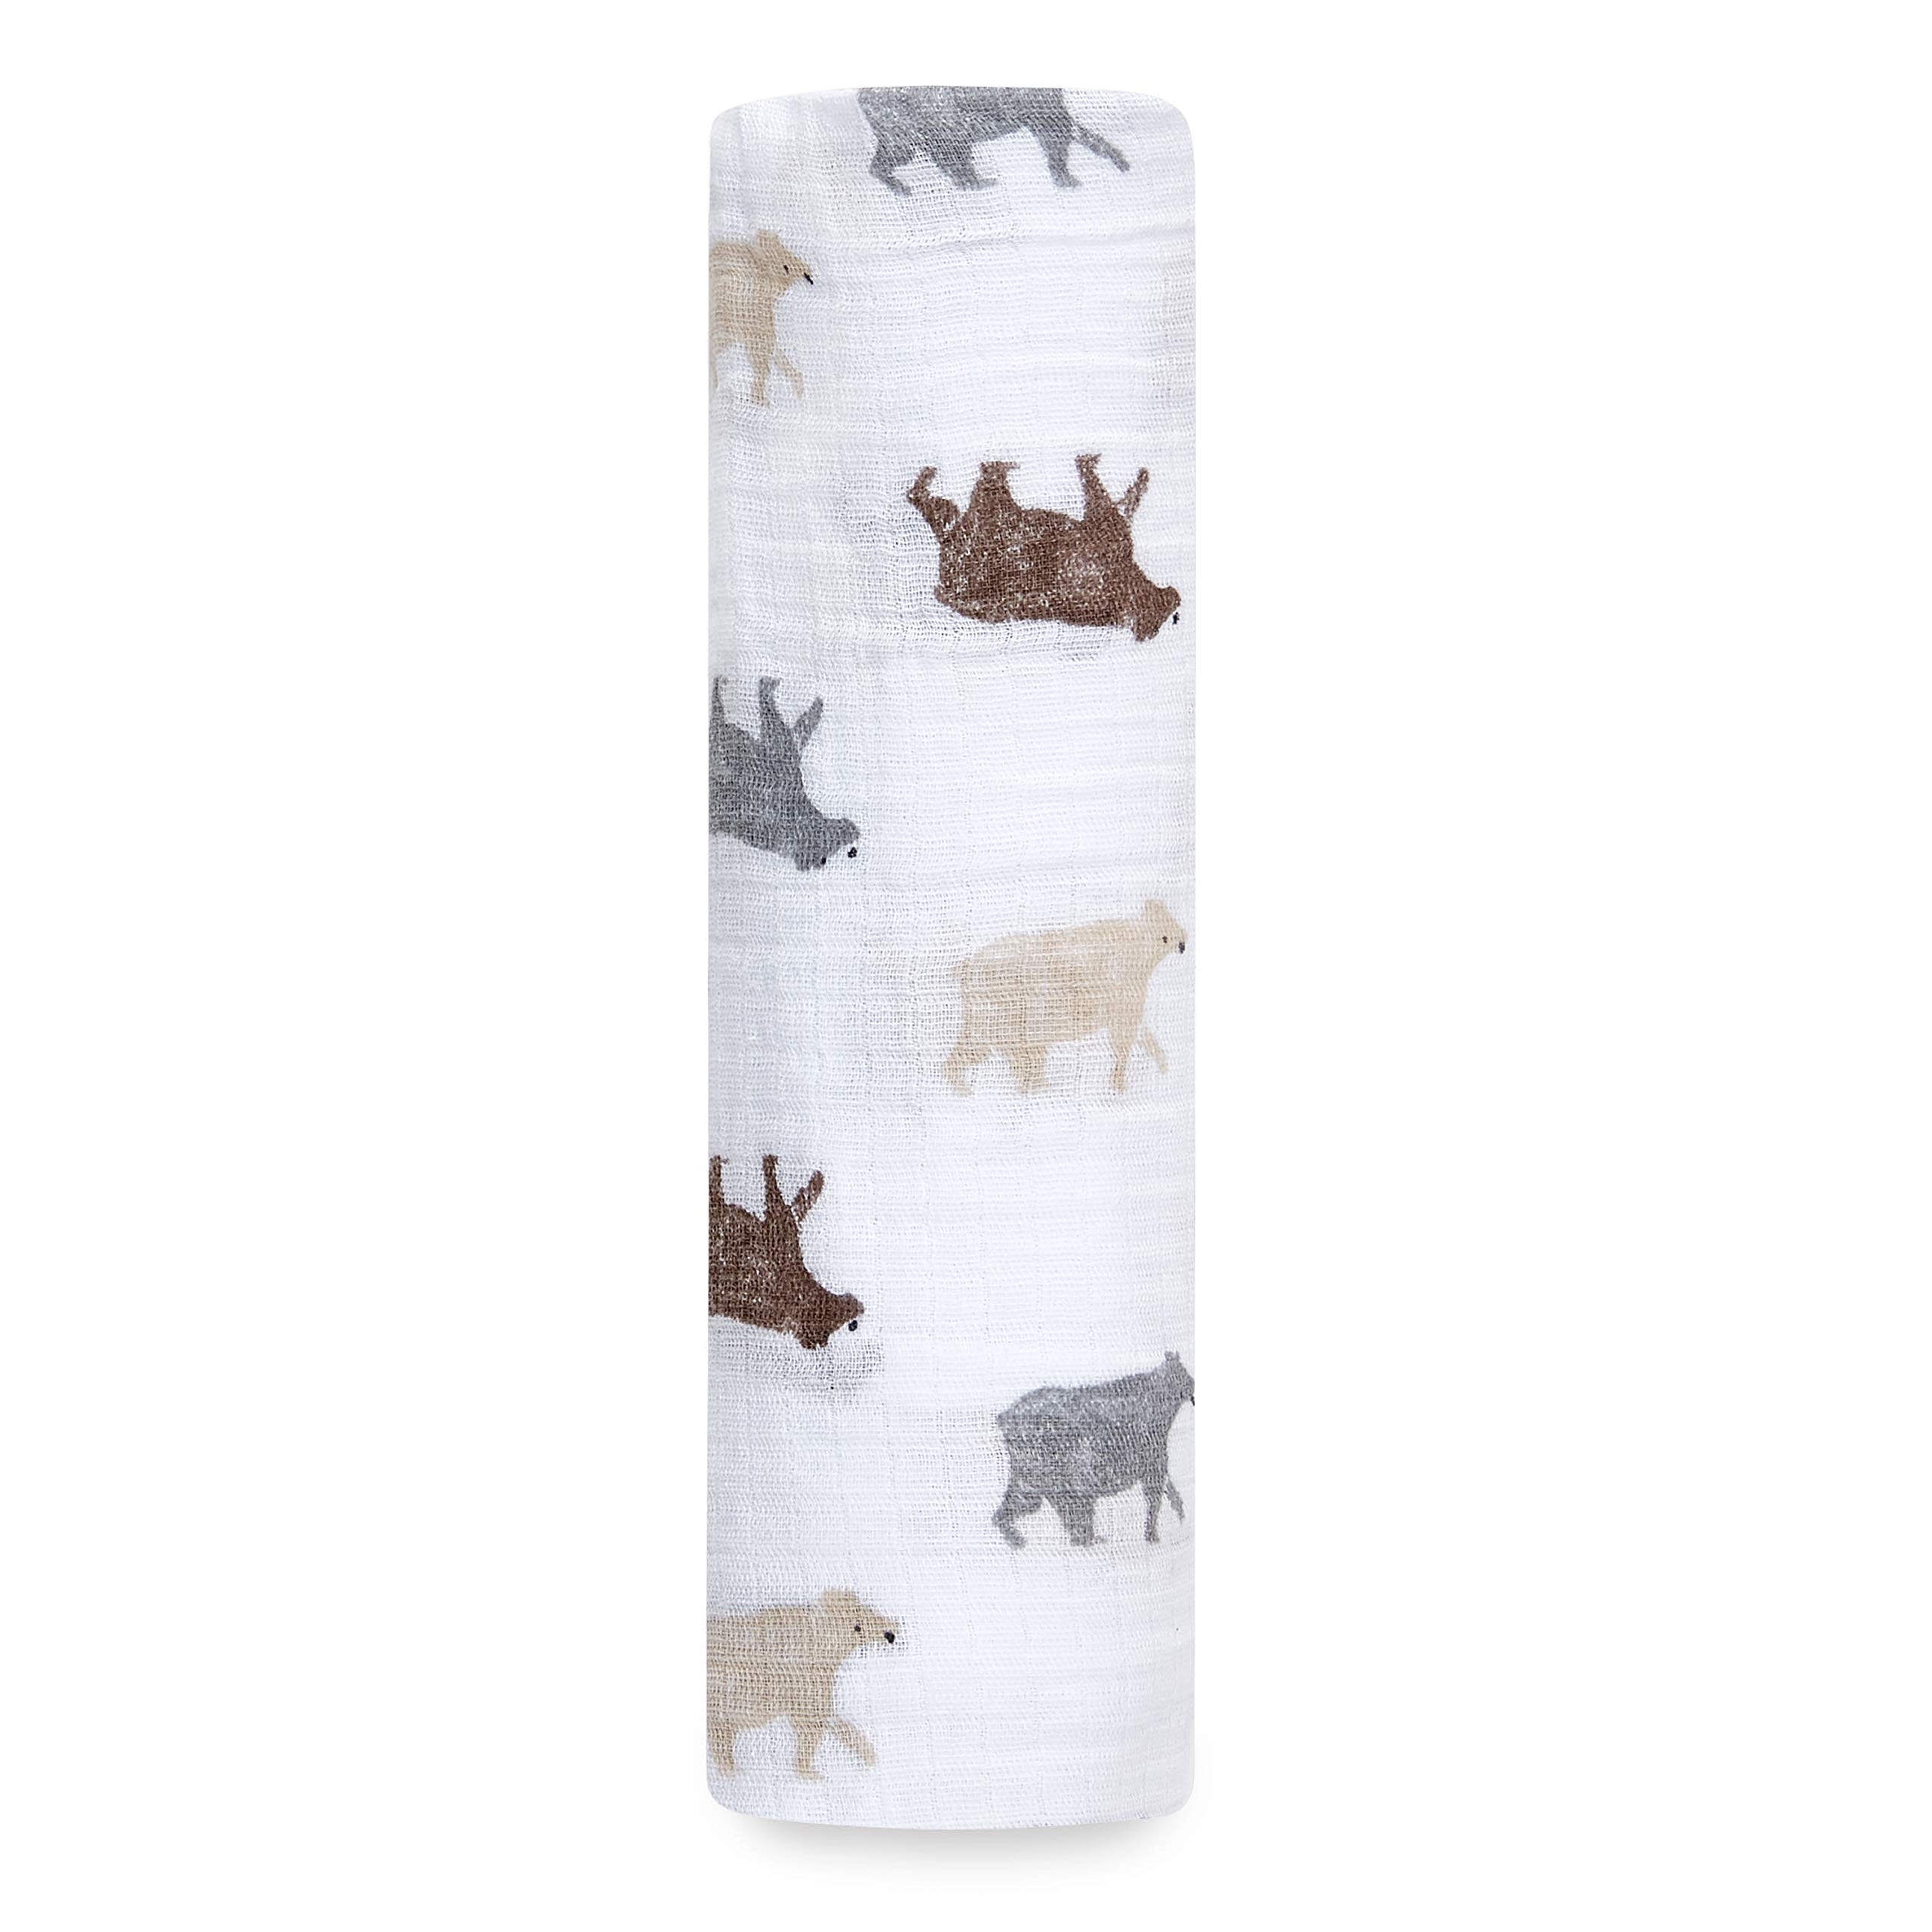 Aden by aden + anais Swaddle Blanket, Muslin Blankets for Girls & Boys, Baby Receiving Swaddles, Ideal Newborn Gifts, Unisex Infant Shower Items,Toddler Gift,Wearable Swaddling Wrap,Bear Necessities